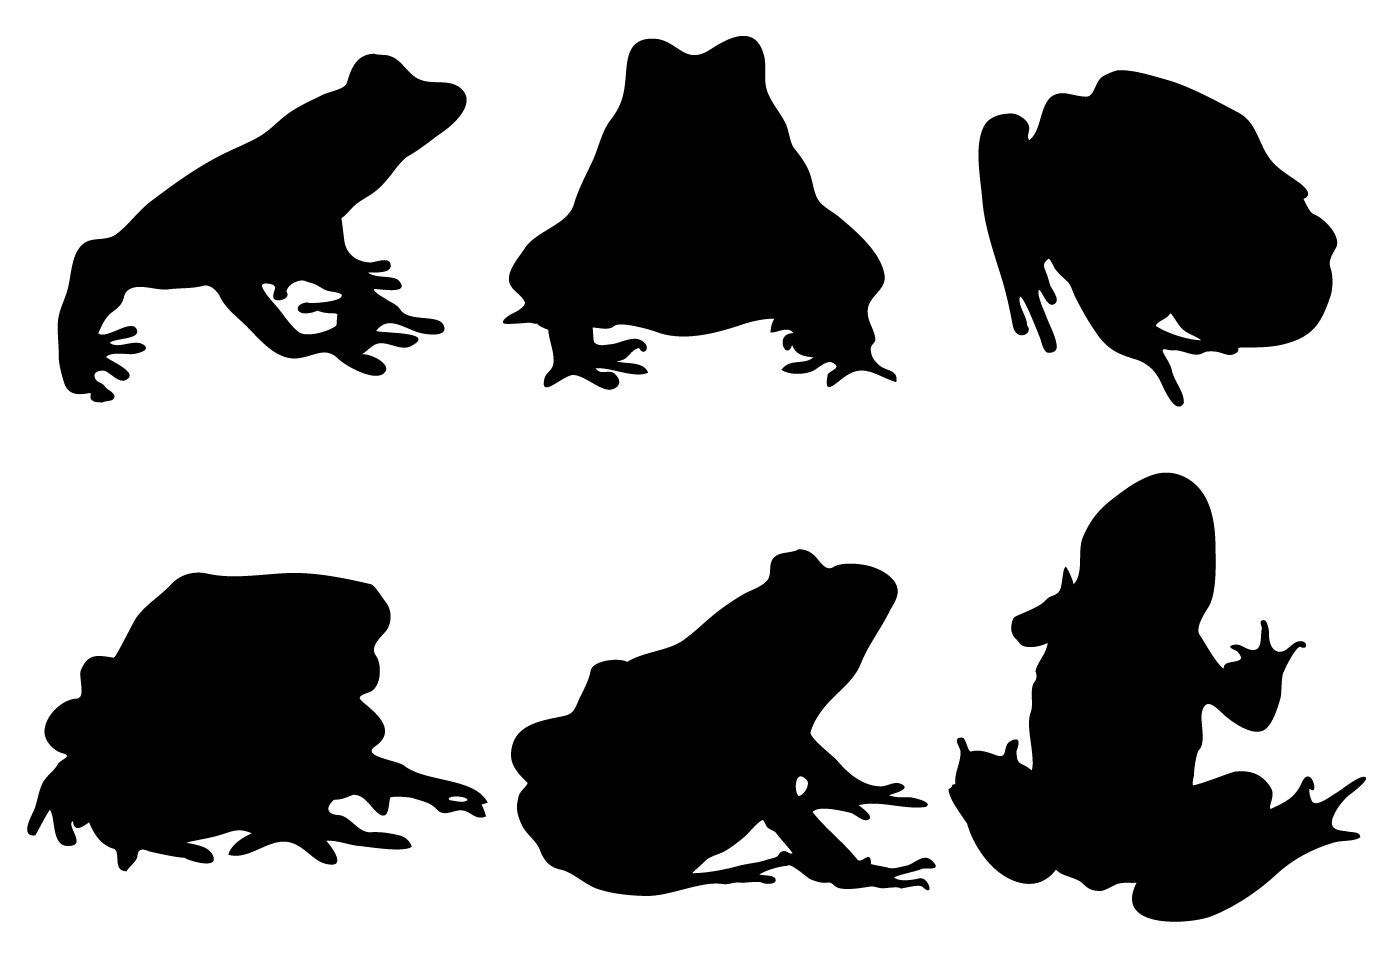 Frog Silhouette Free Vector Art.